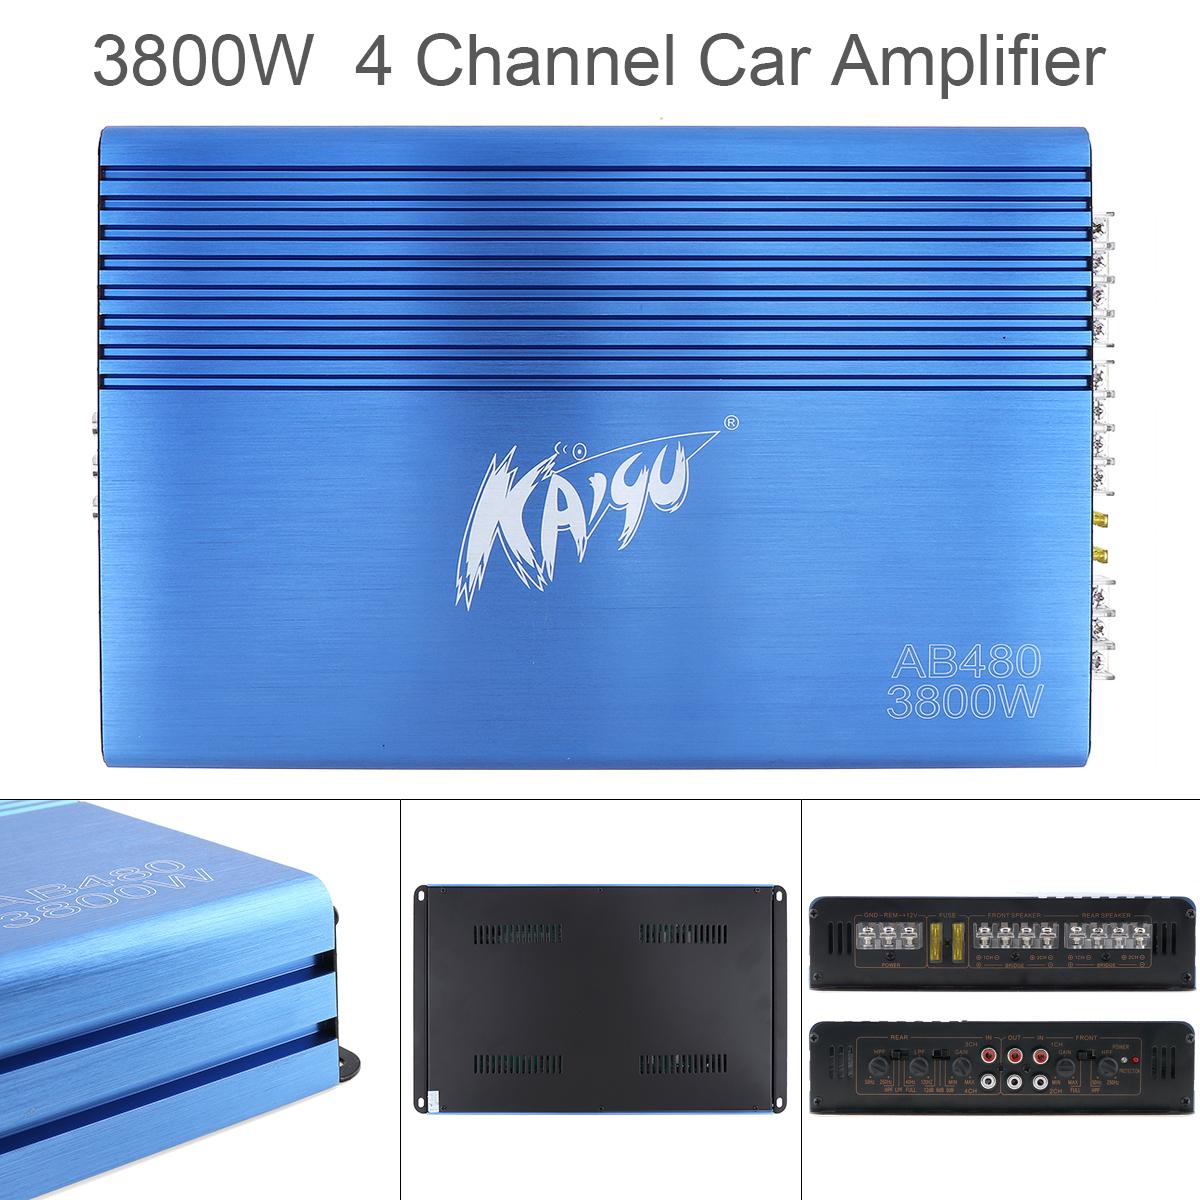 3800W Car Amplifier Class AB Digital 4 Channel Blue 12V Aluminum Alloy High Power Car Stereo Audio Amplifier Amp for Car Home aiyima 12v tda7297 audio amplifier board amplificador class ab stereo dual channel amplifier board 15w 15w